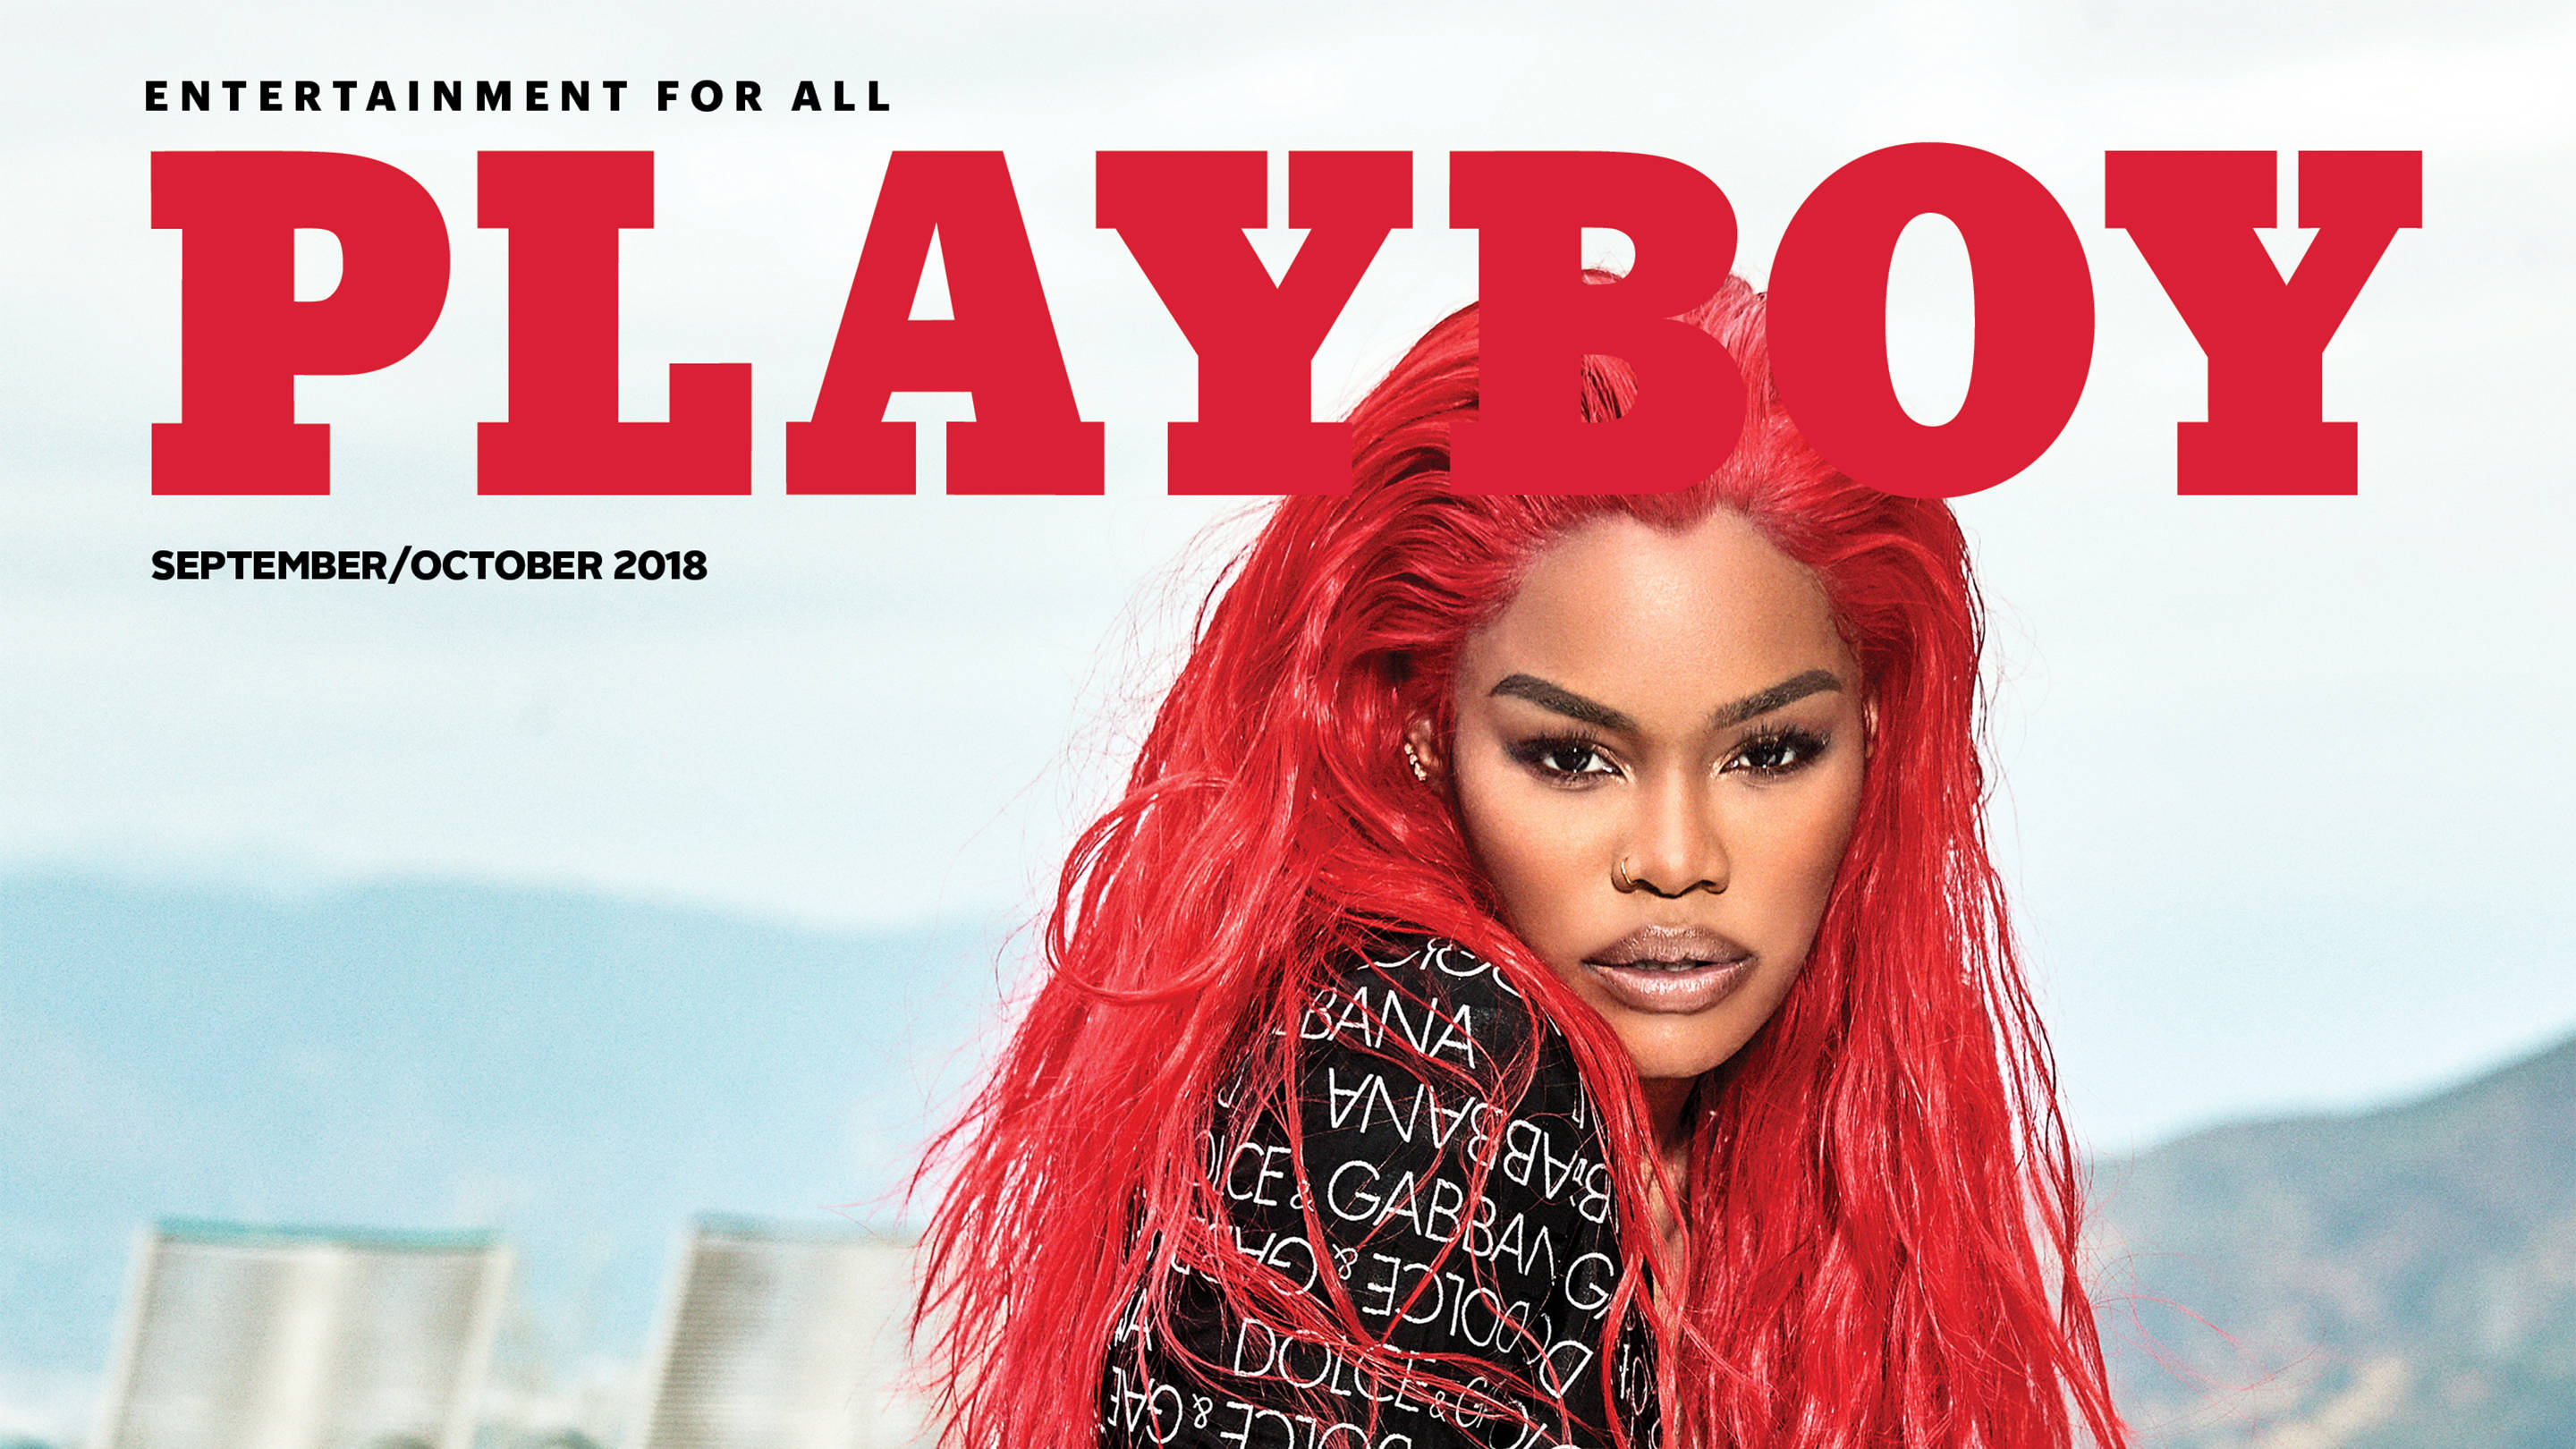 Teyana Taylor Playboy cover